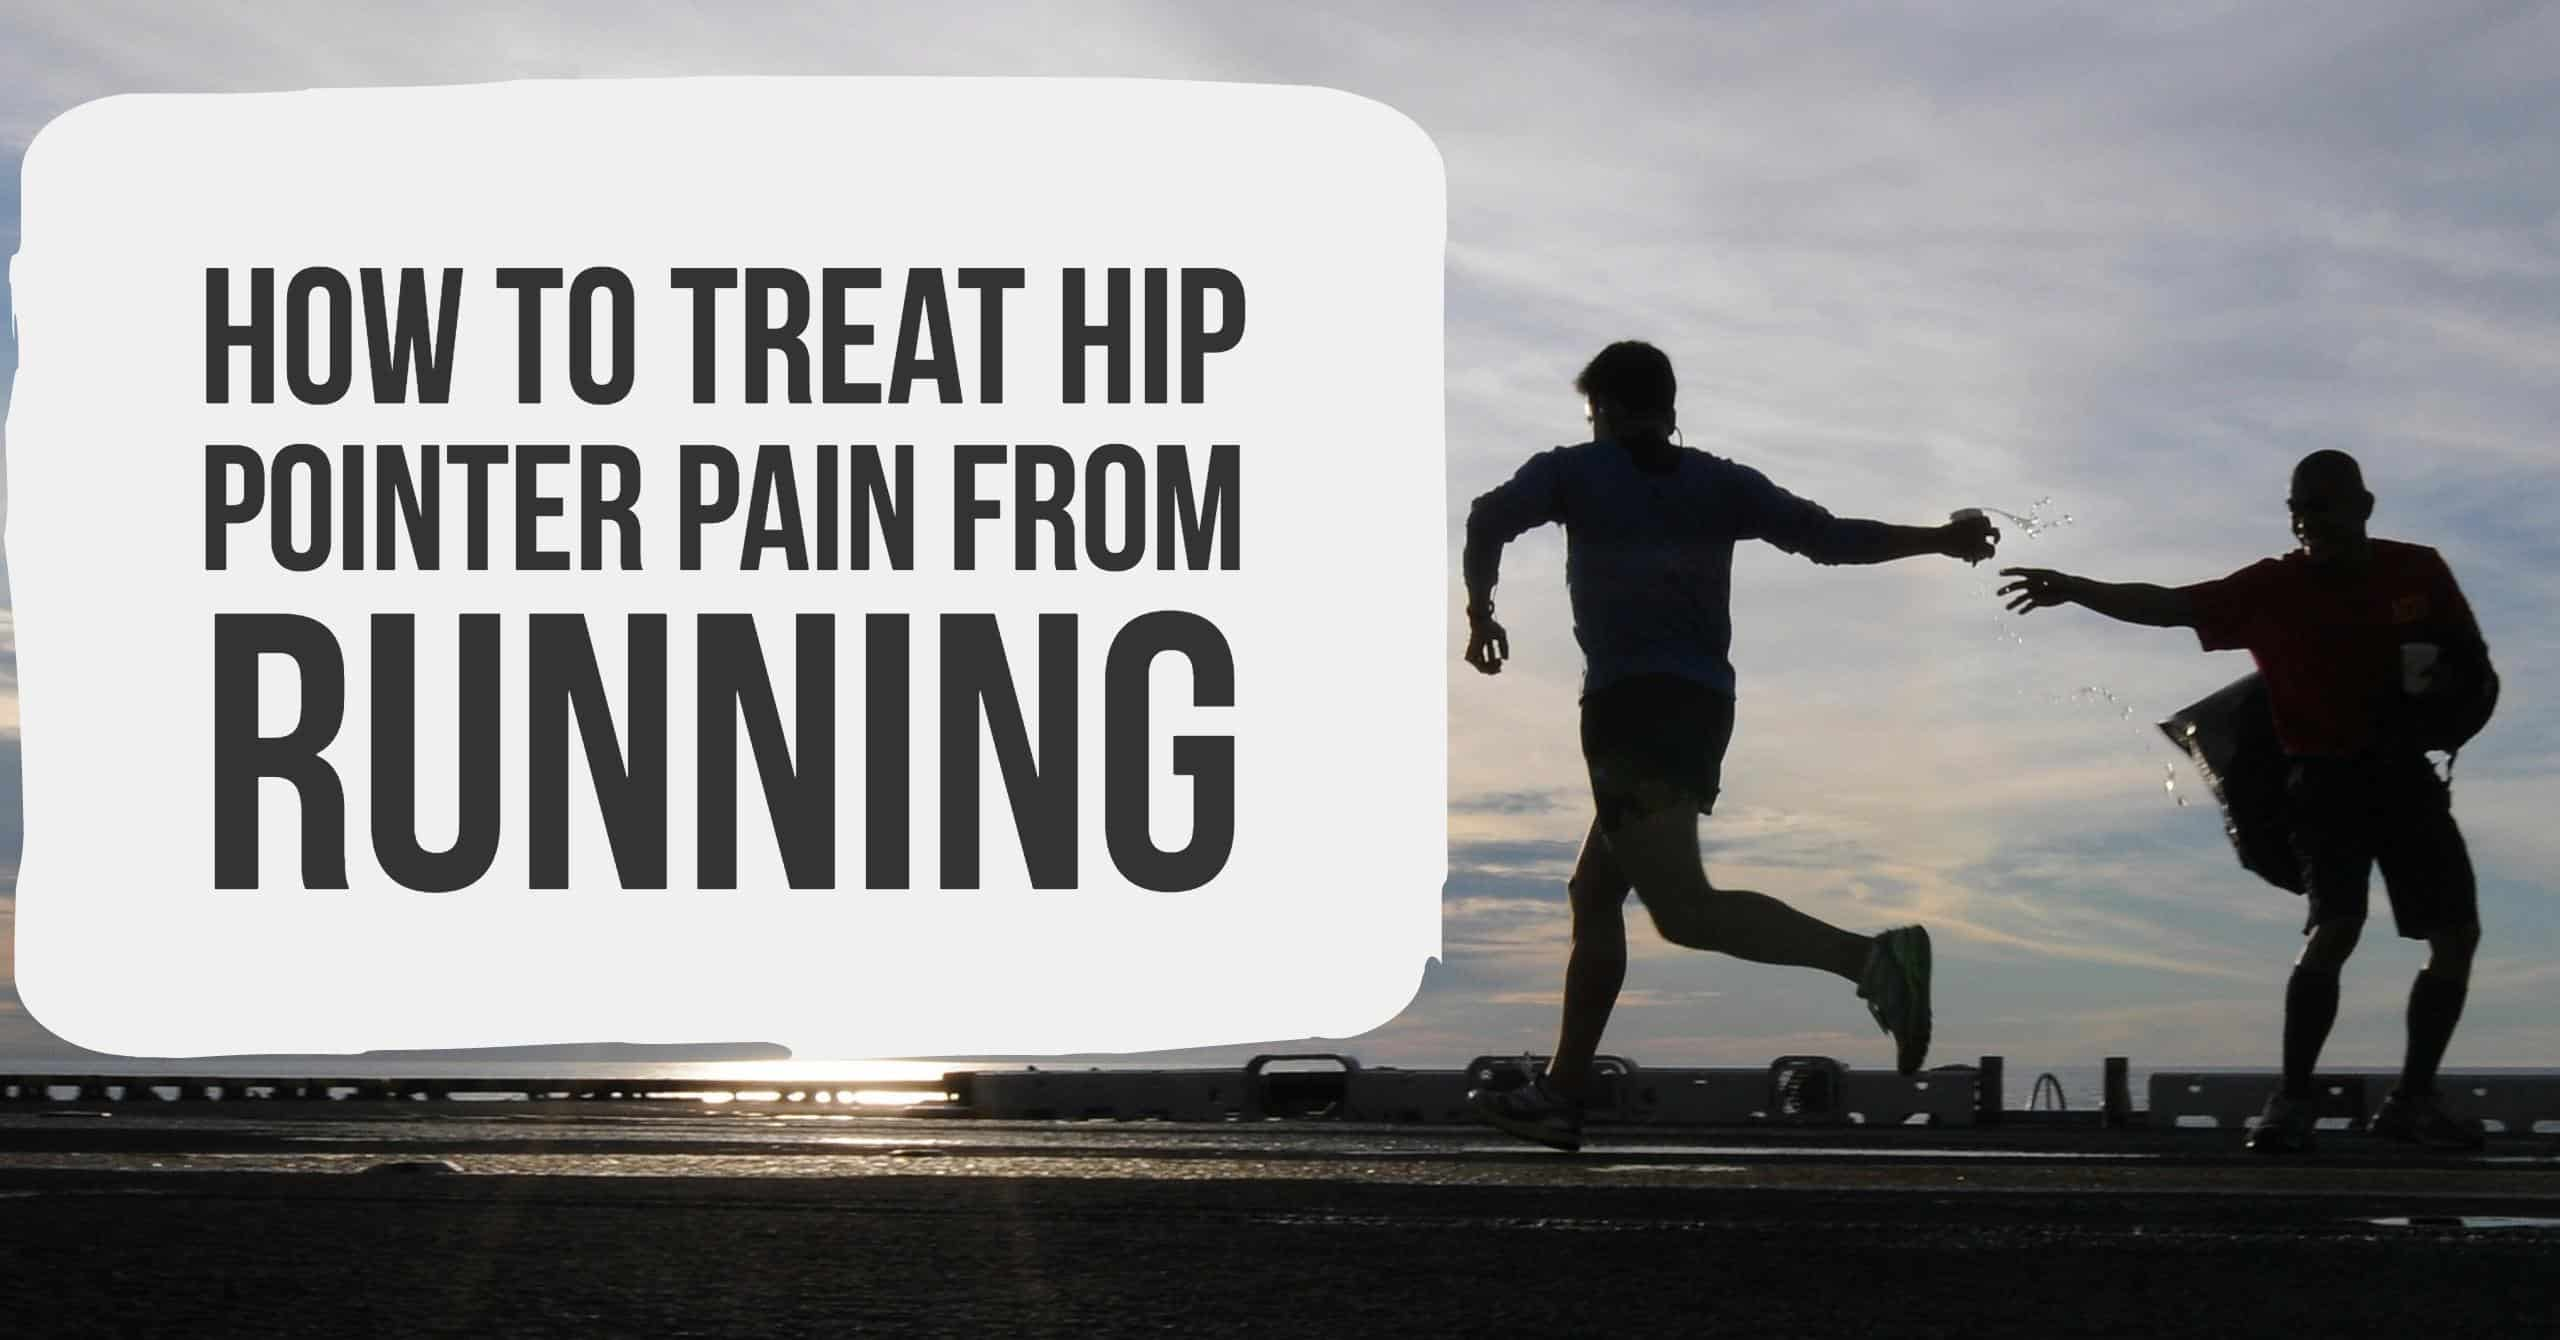 A hip pointer injury can painful and prevent most people from running. This article covers various ways how you can treat hip pointer pain from running.